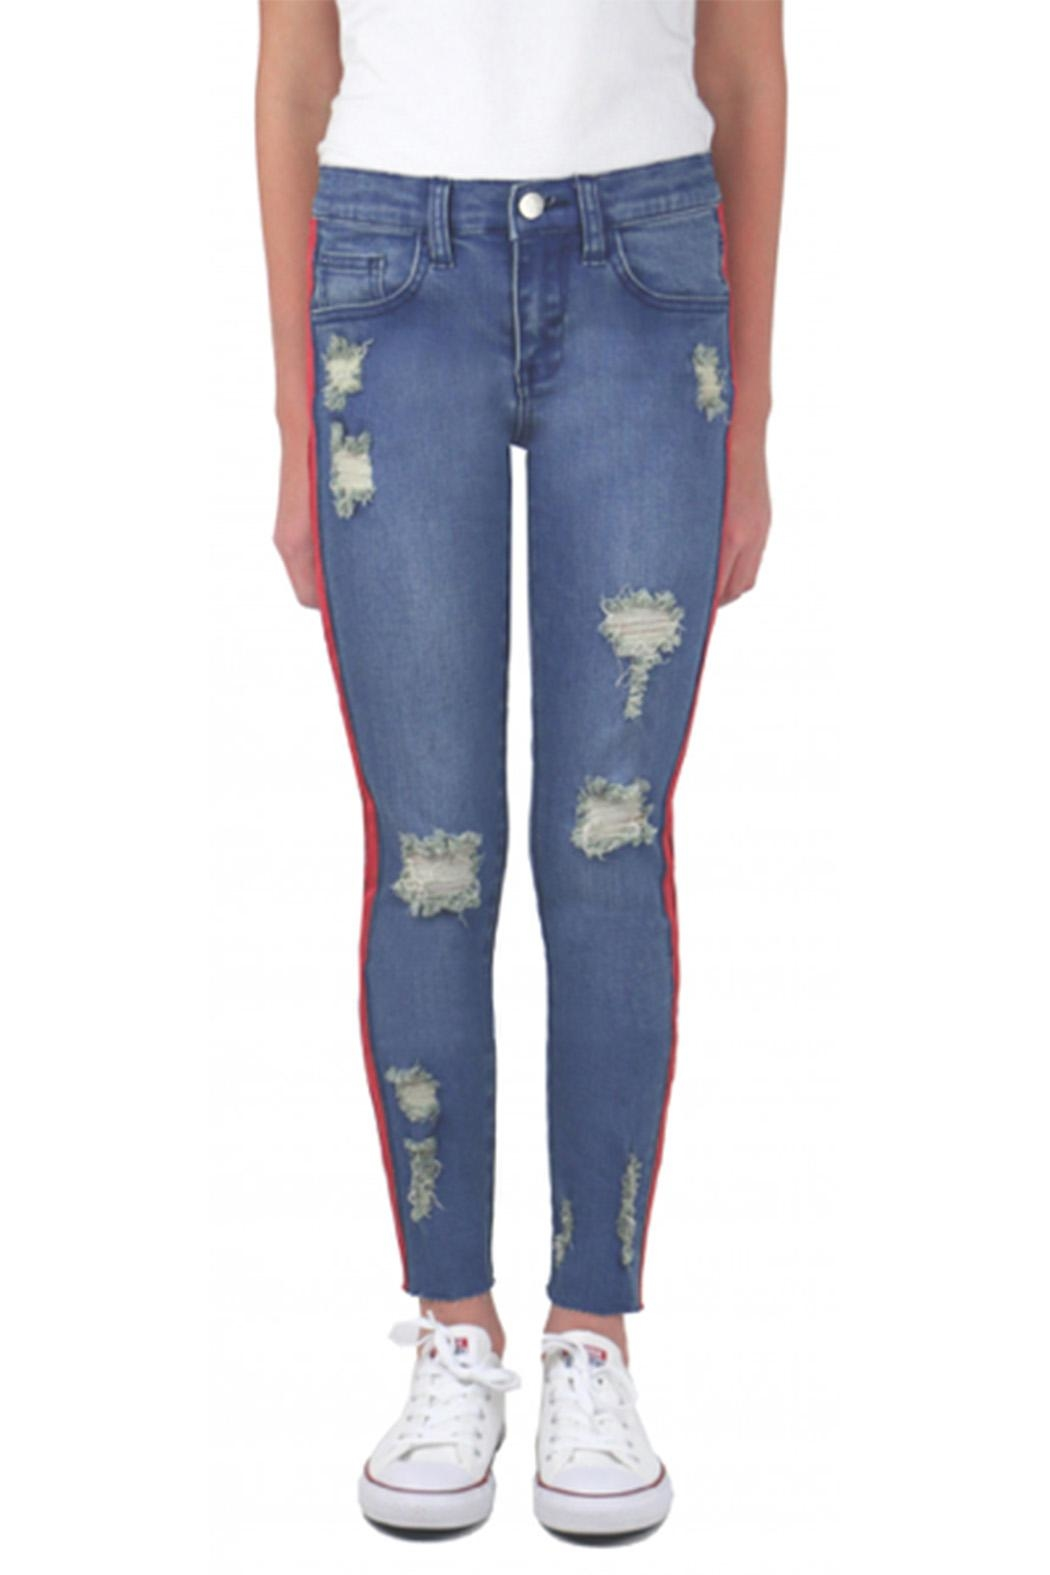 e922d21169846 Tractr Blu Red Stripe Jeans from New York by infinity/jjlaz — Shoptiques